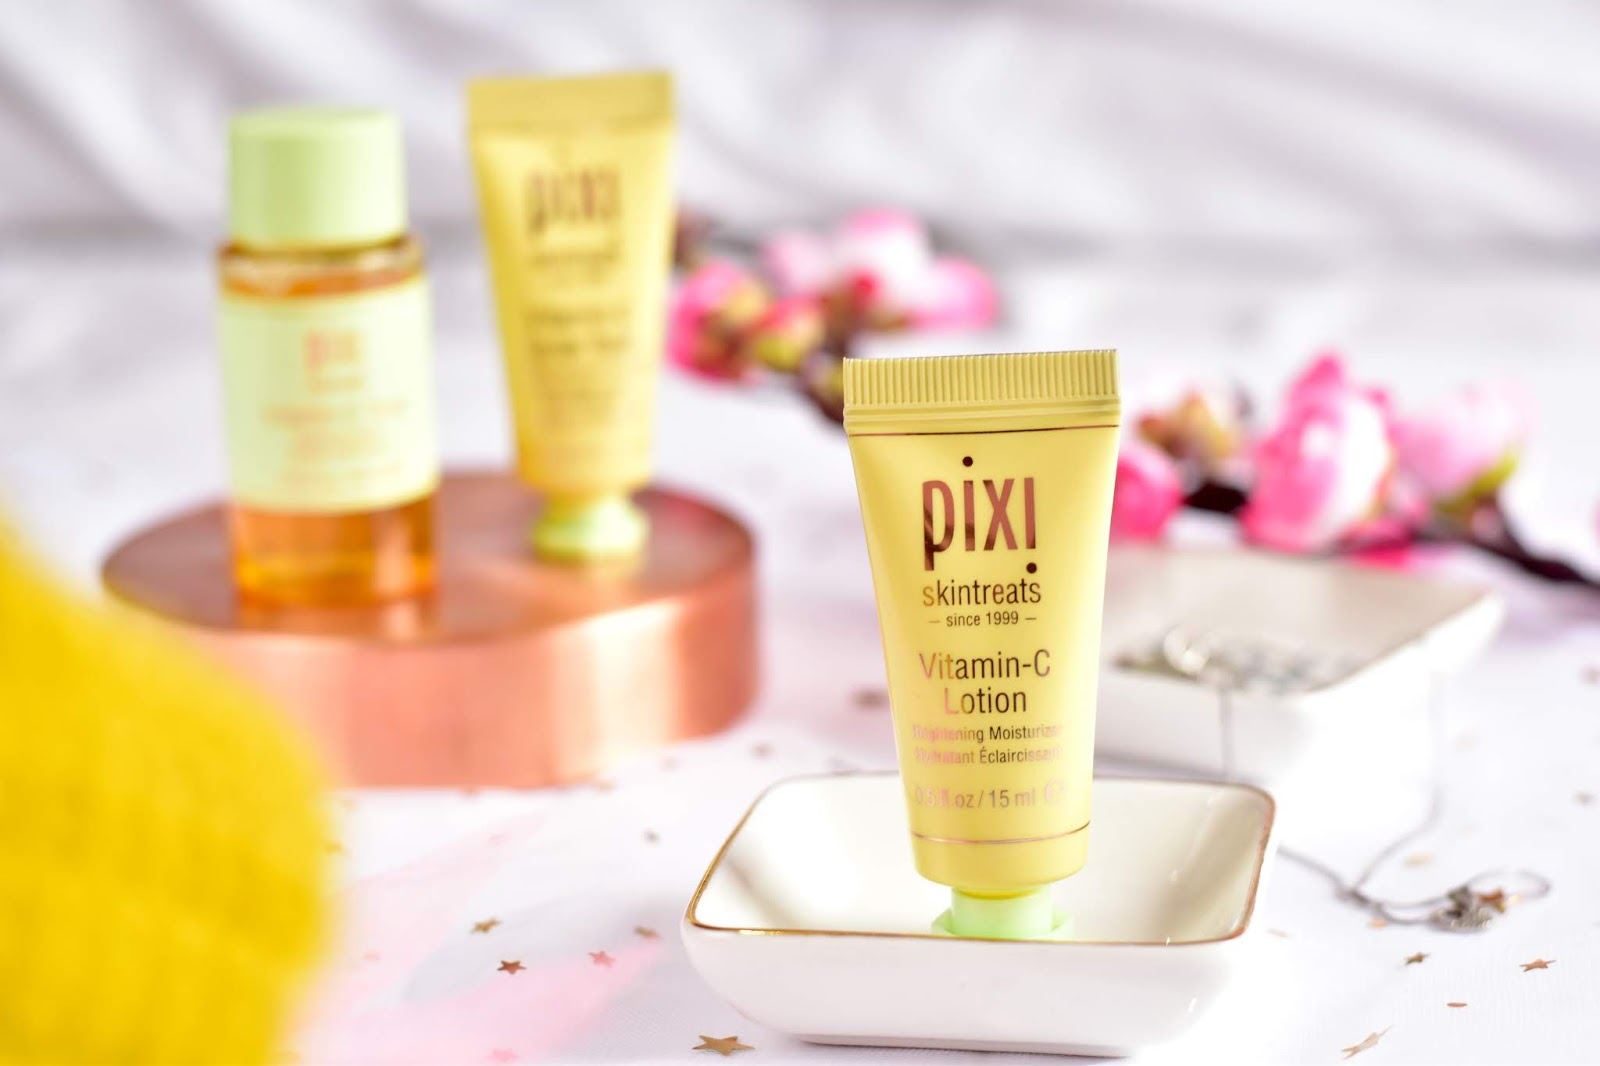 PIXI vitamin C Lotion